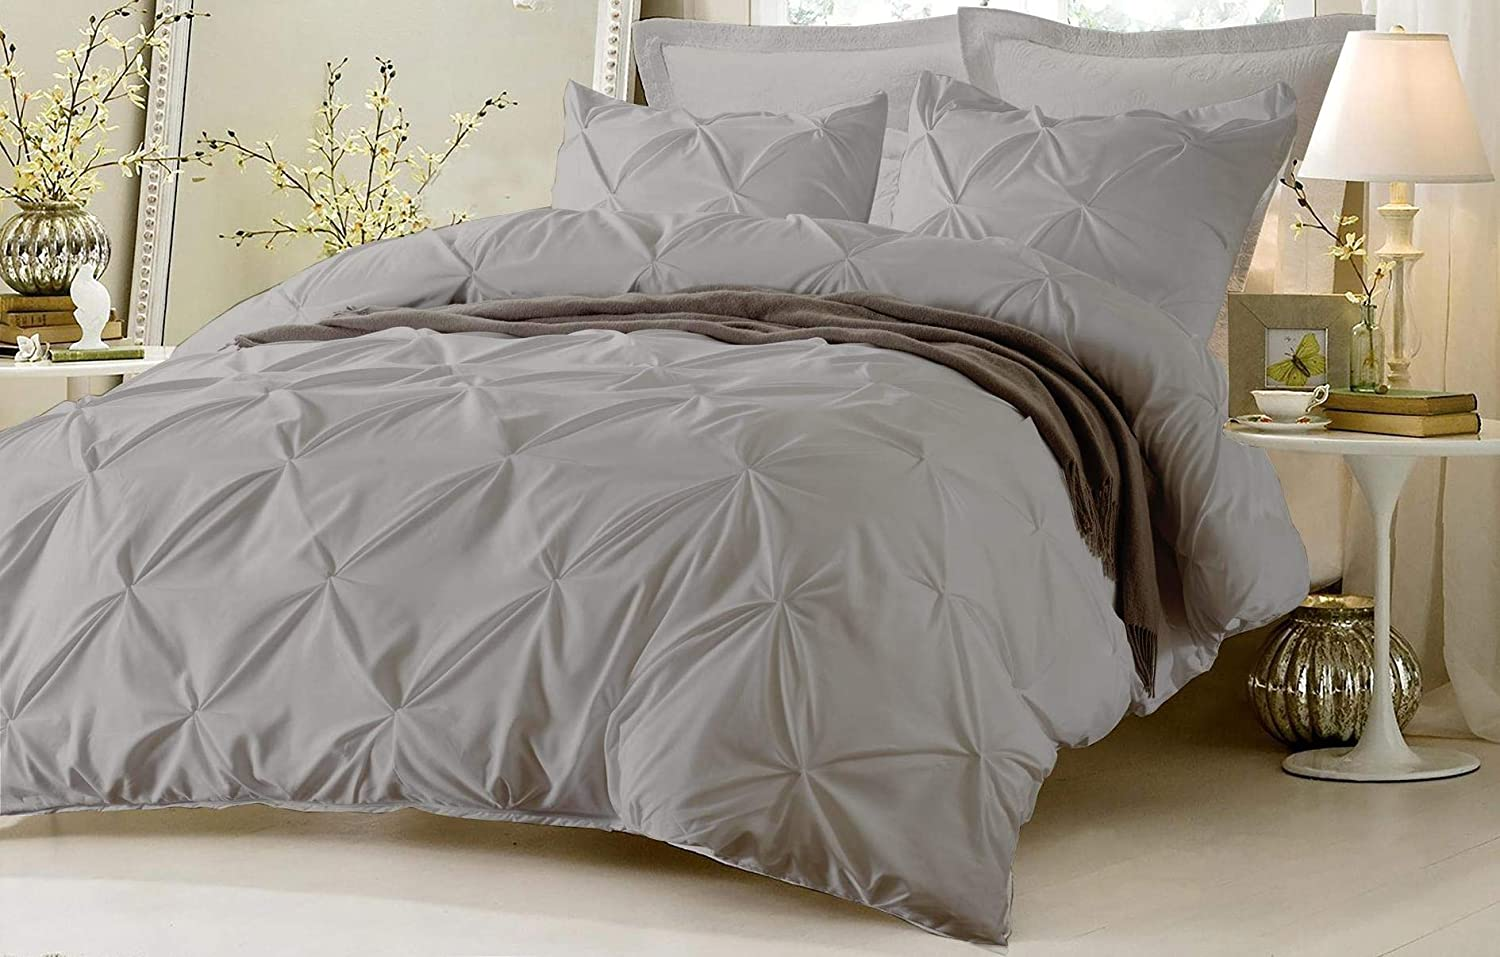 Queen Full White Duvet Covers Kotton Culture Pinch Pleated 3